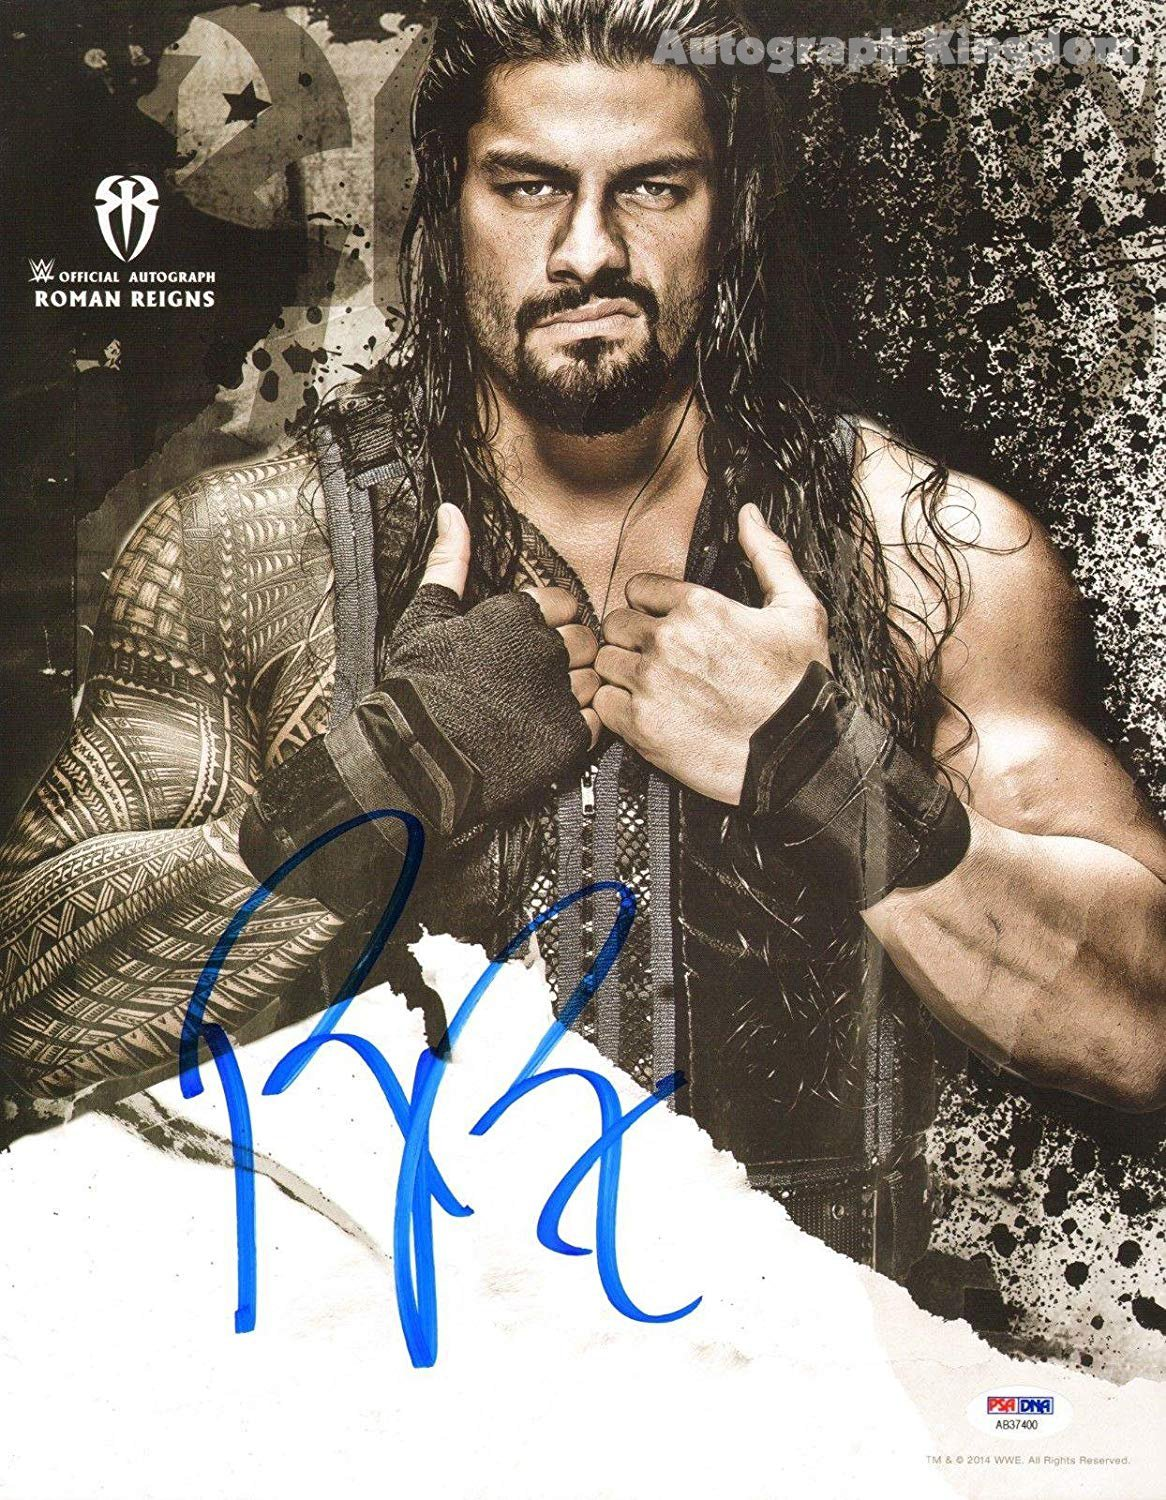 "Roman Reigns WWE Wrester 8 x 10"" Autographed Photo (Ref:498)"